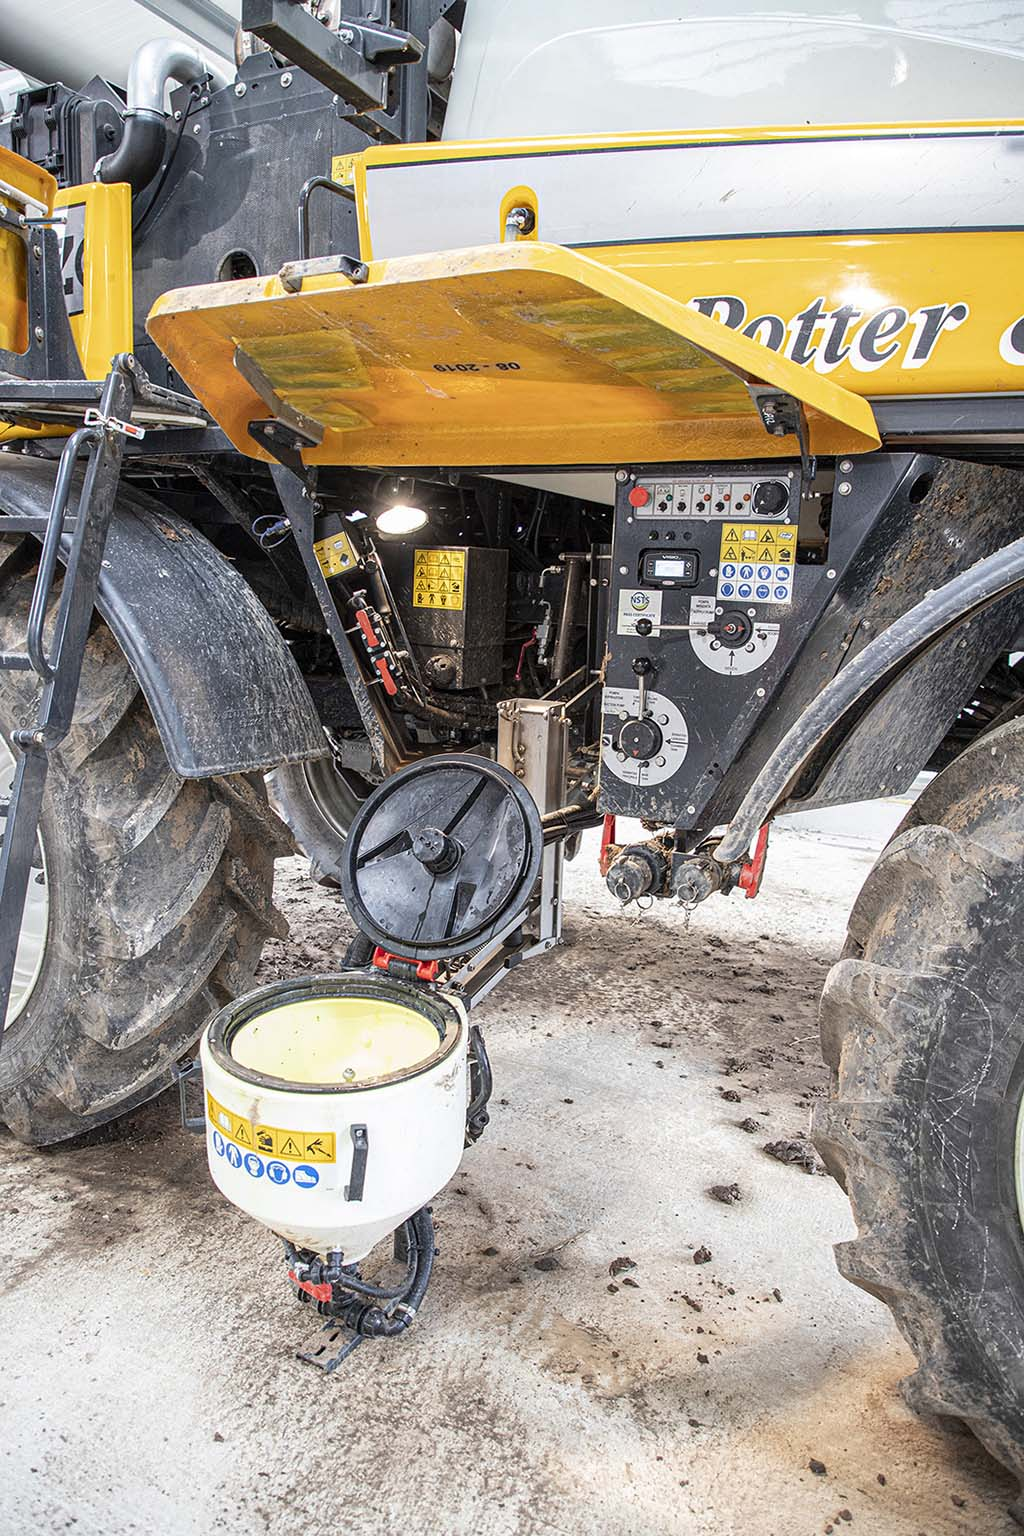 Induction area would benefit from mudguard extensions for better protection against dirt and debris.